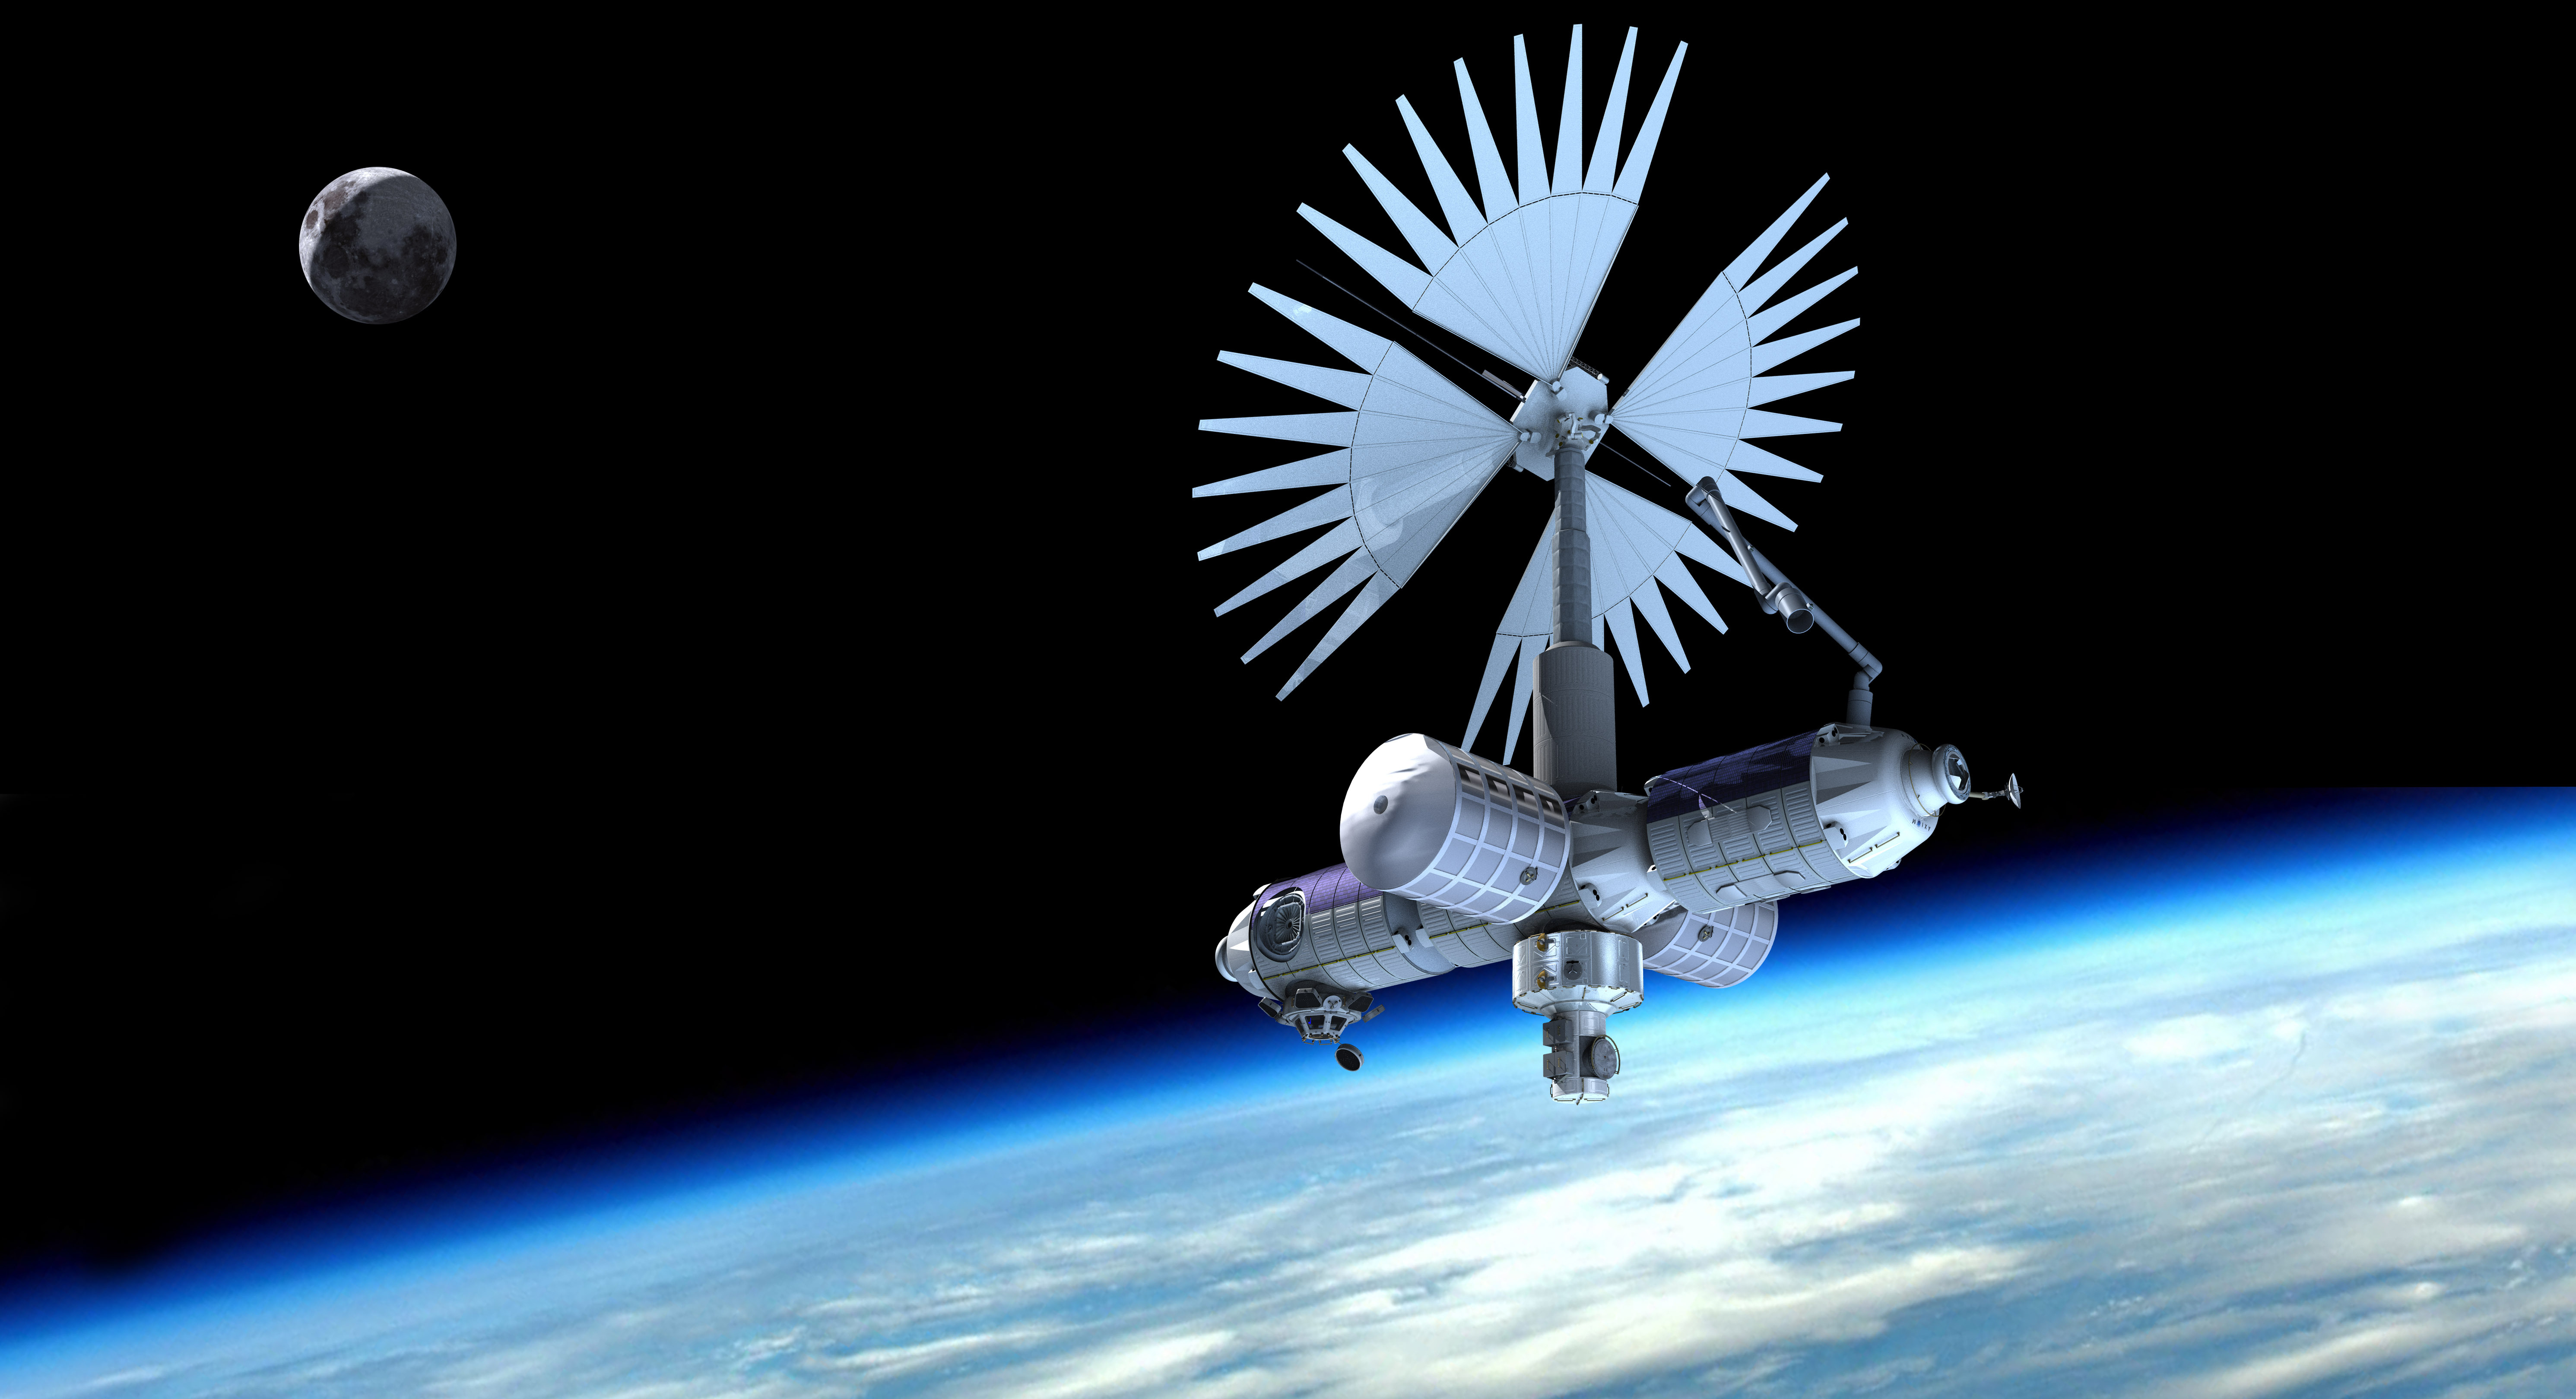 spacecraft in space - photo #22